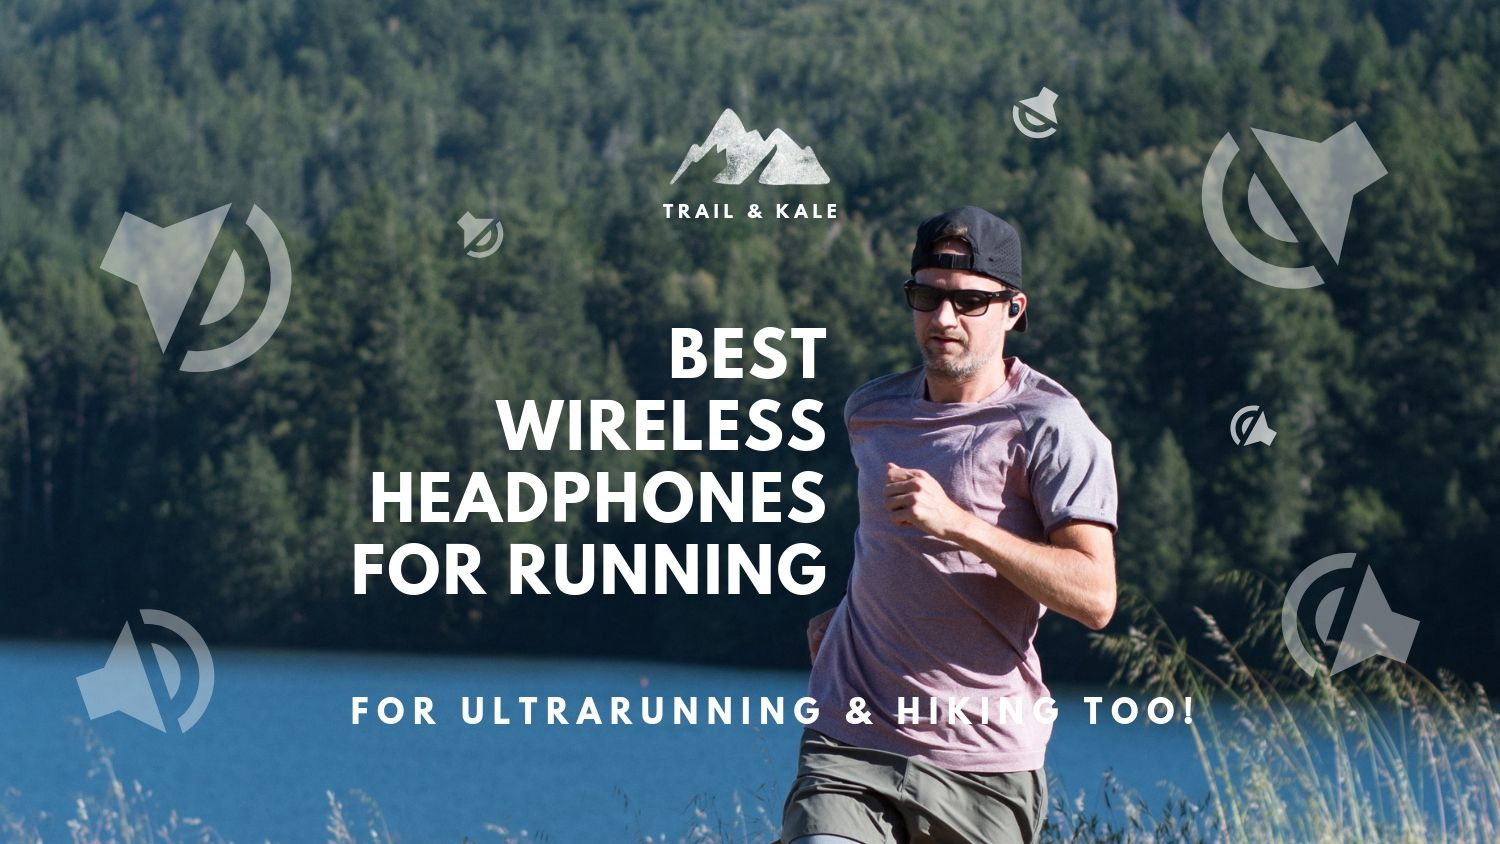 best wireless headphones for running trail and kale min